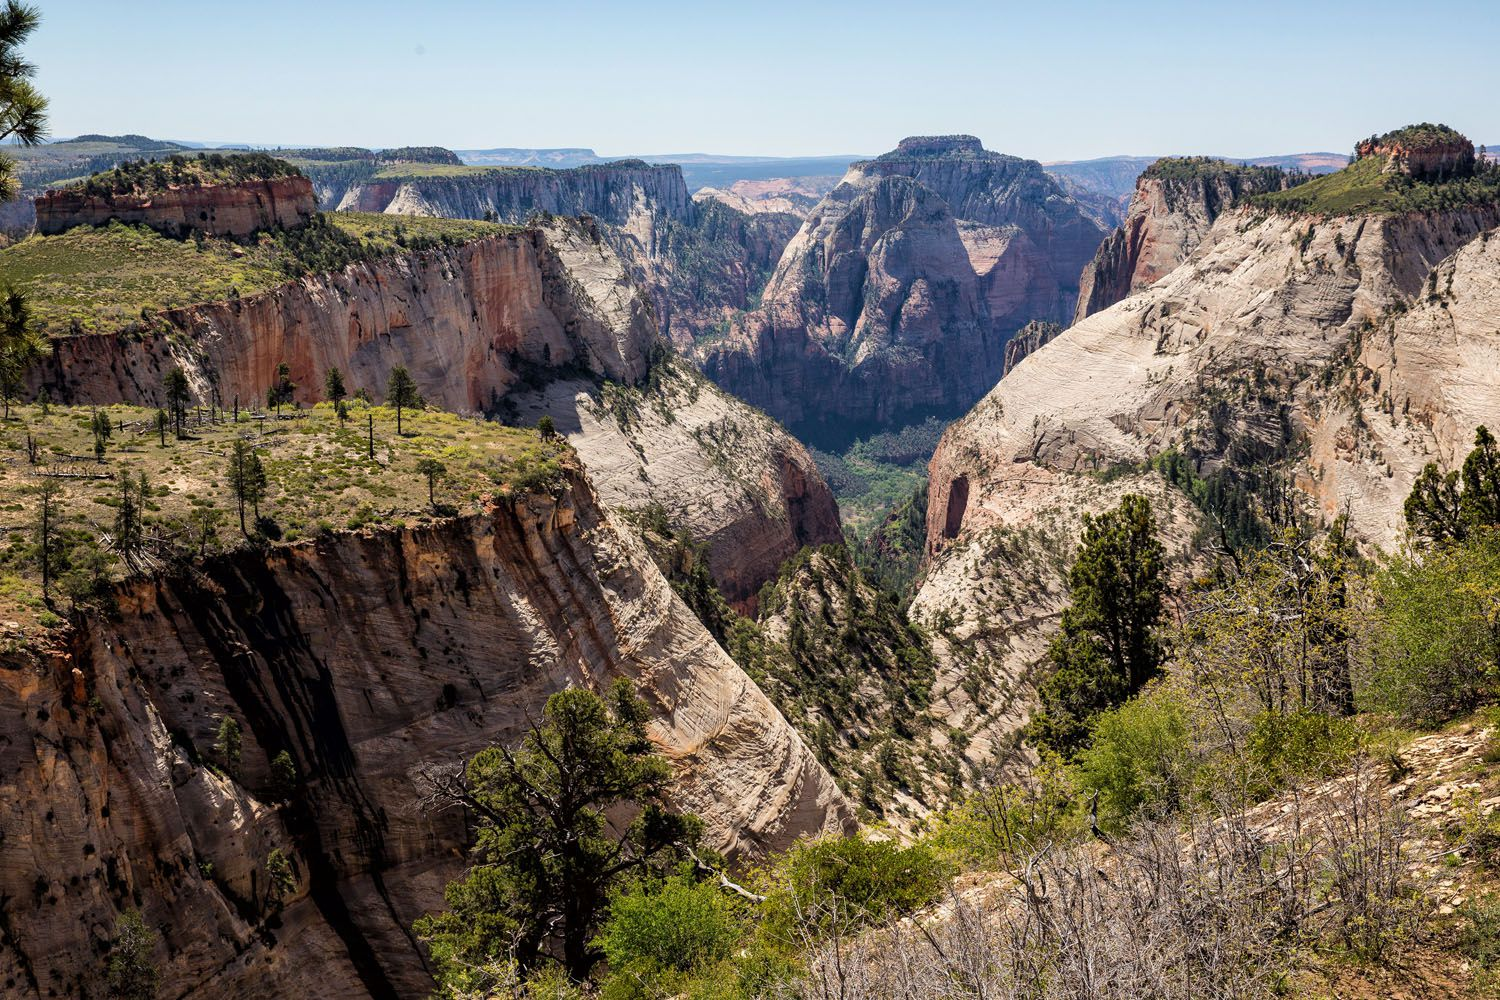 View from West Rim Trail